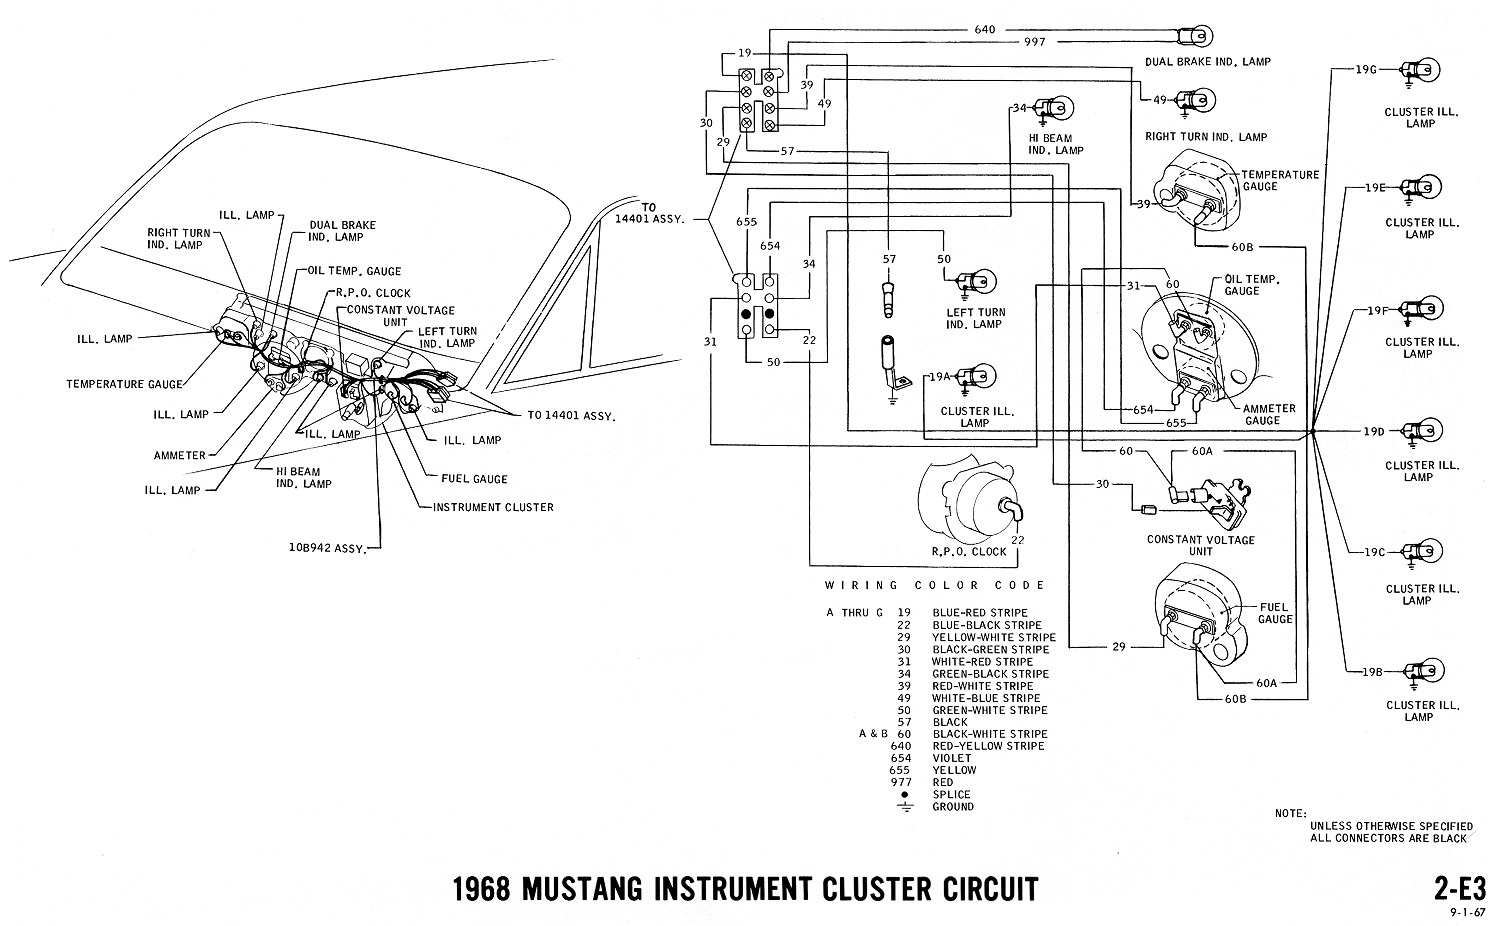 65 Mustang Engine Wiring Diagram further 7nzeu F100 68 Ford F100 69 302 My Buddy Thinks moreover 1968 Mustang Wiring Diagram Vacuum Schematics besides Schematics h moreover Gm Steering Column Wiring Diagram. on 1966 mustang ignition wiring diagram